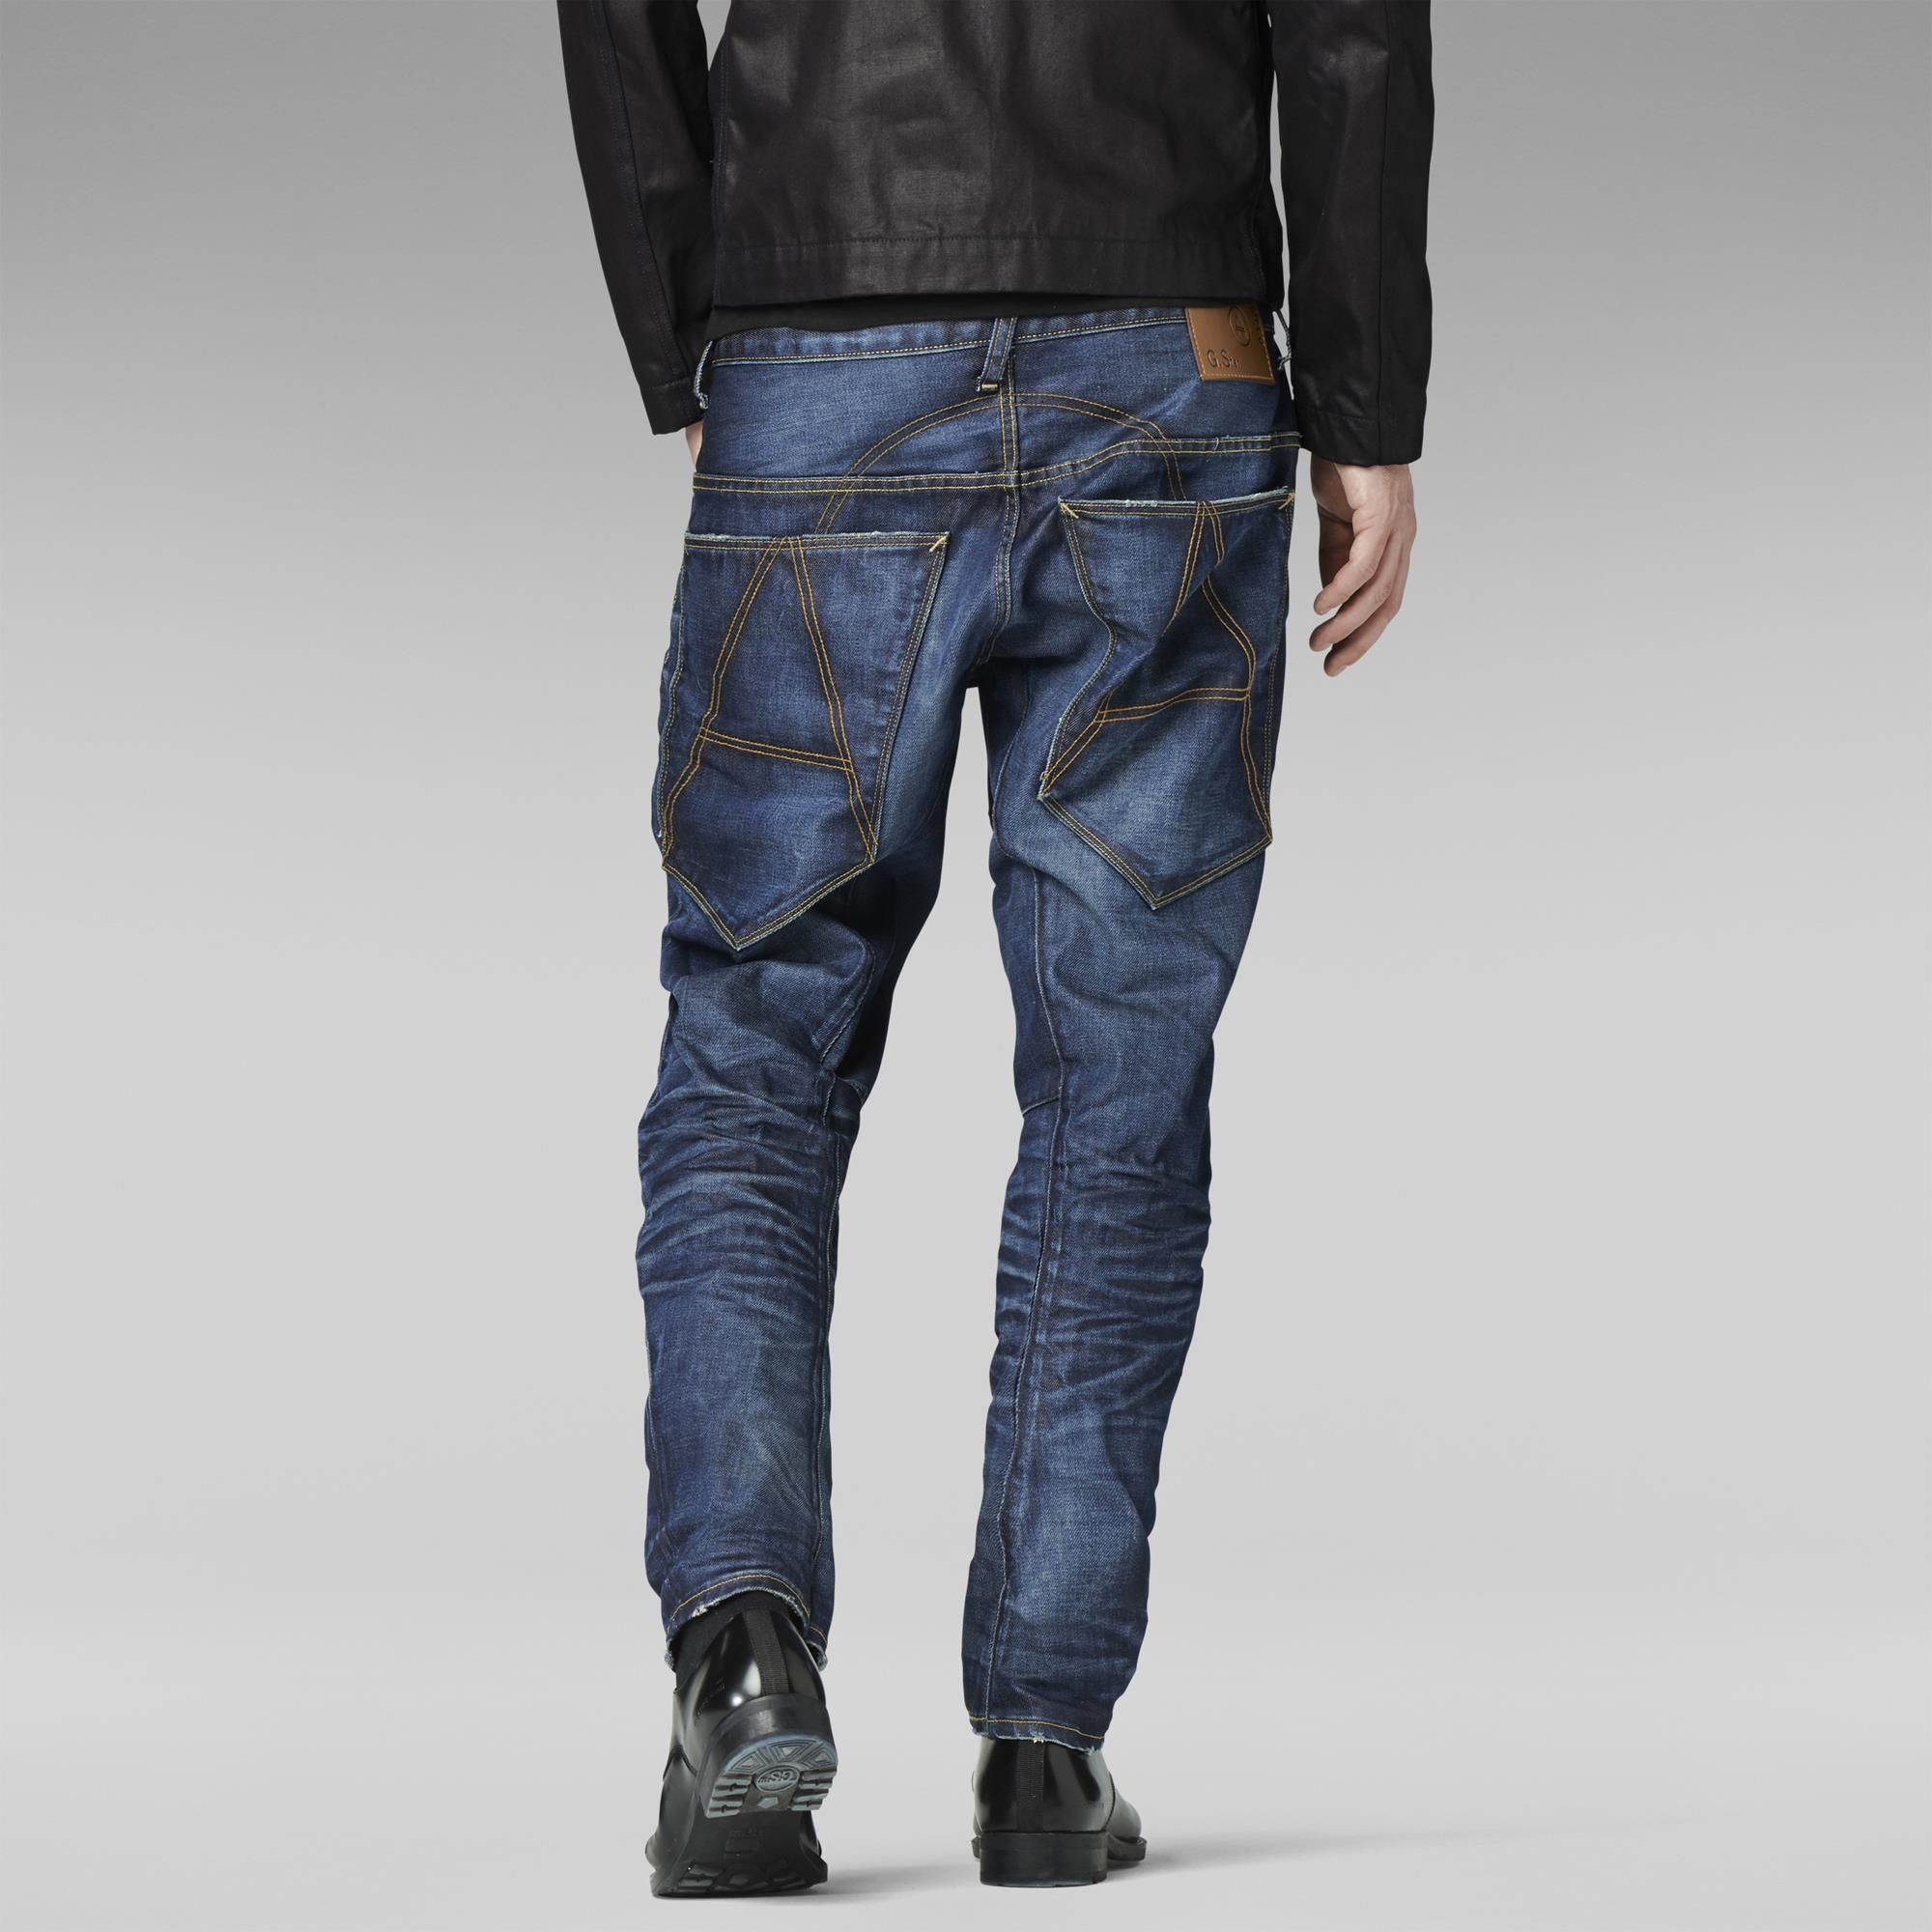 19c35c9c89d A-Crotch Tapered Jeans in 2019 | Ass jeans 4 | Tapered jeans, Jeans ...